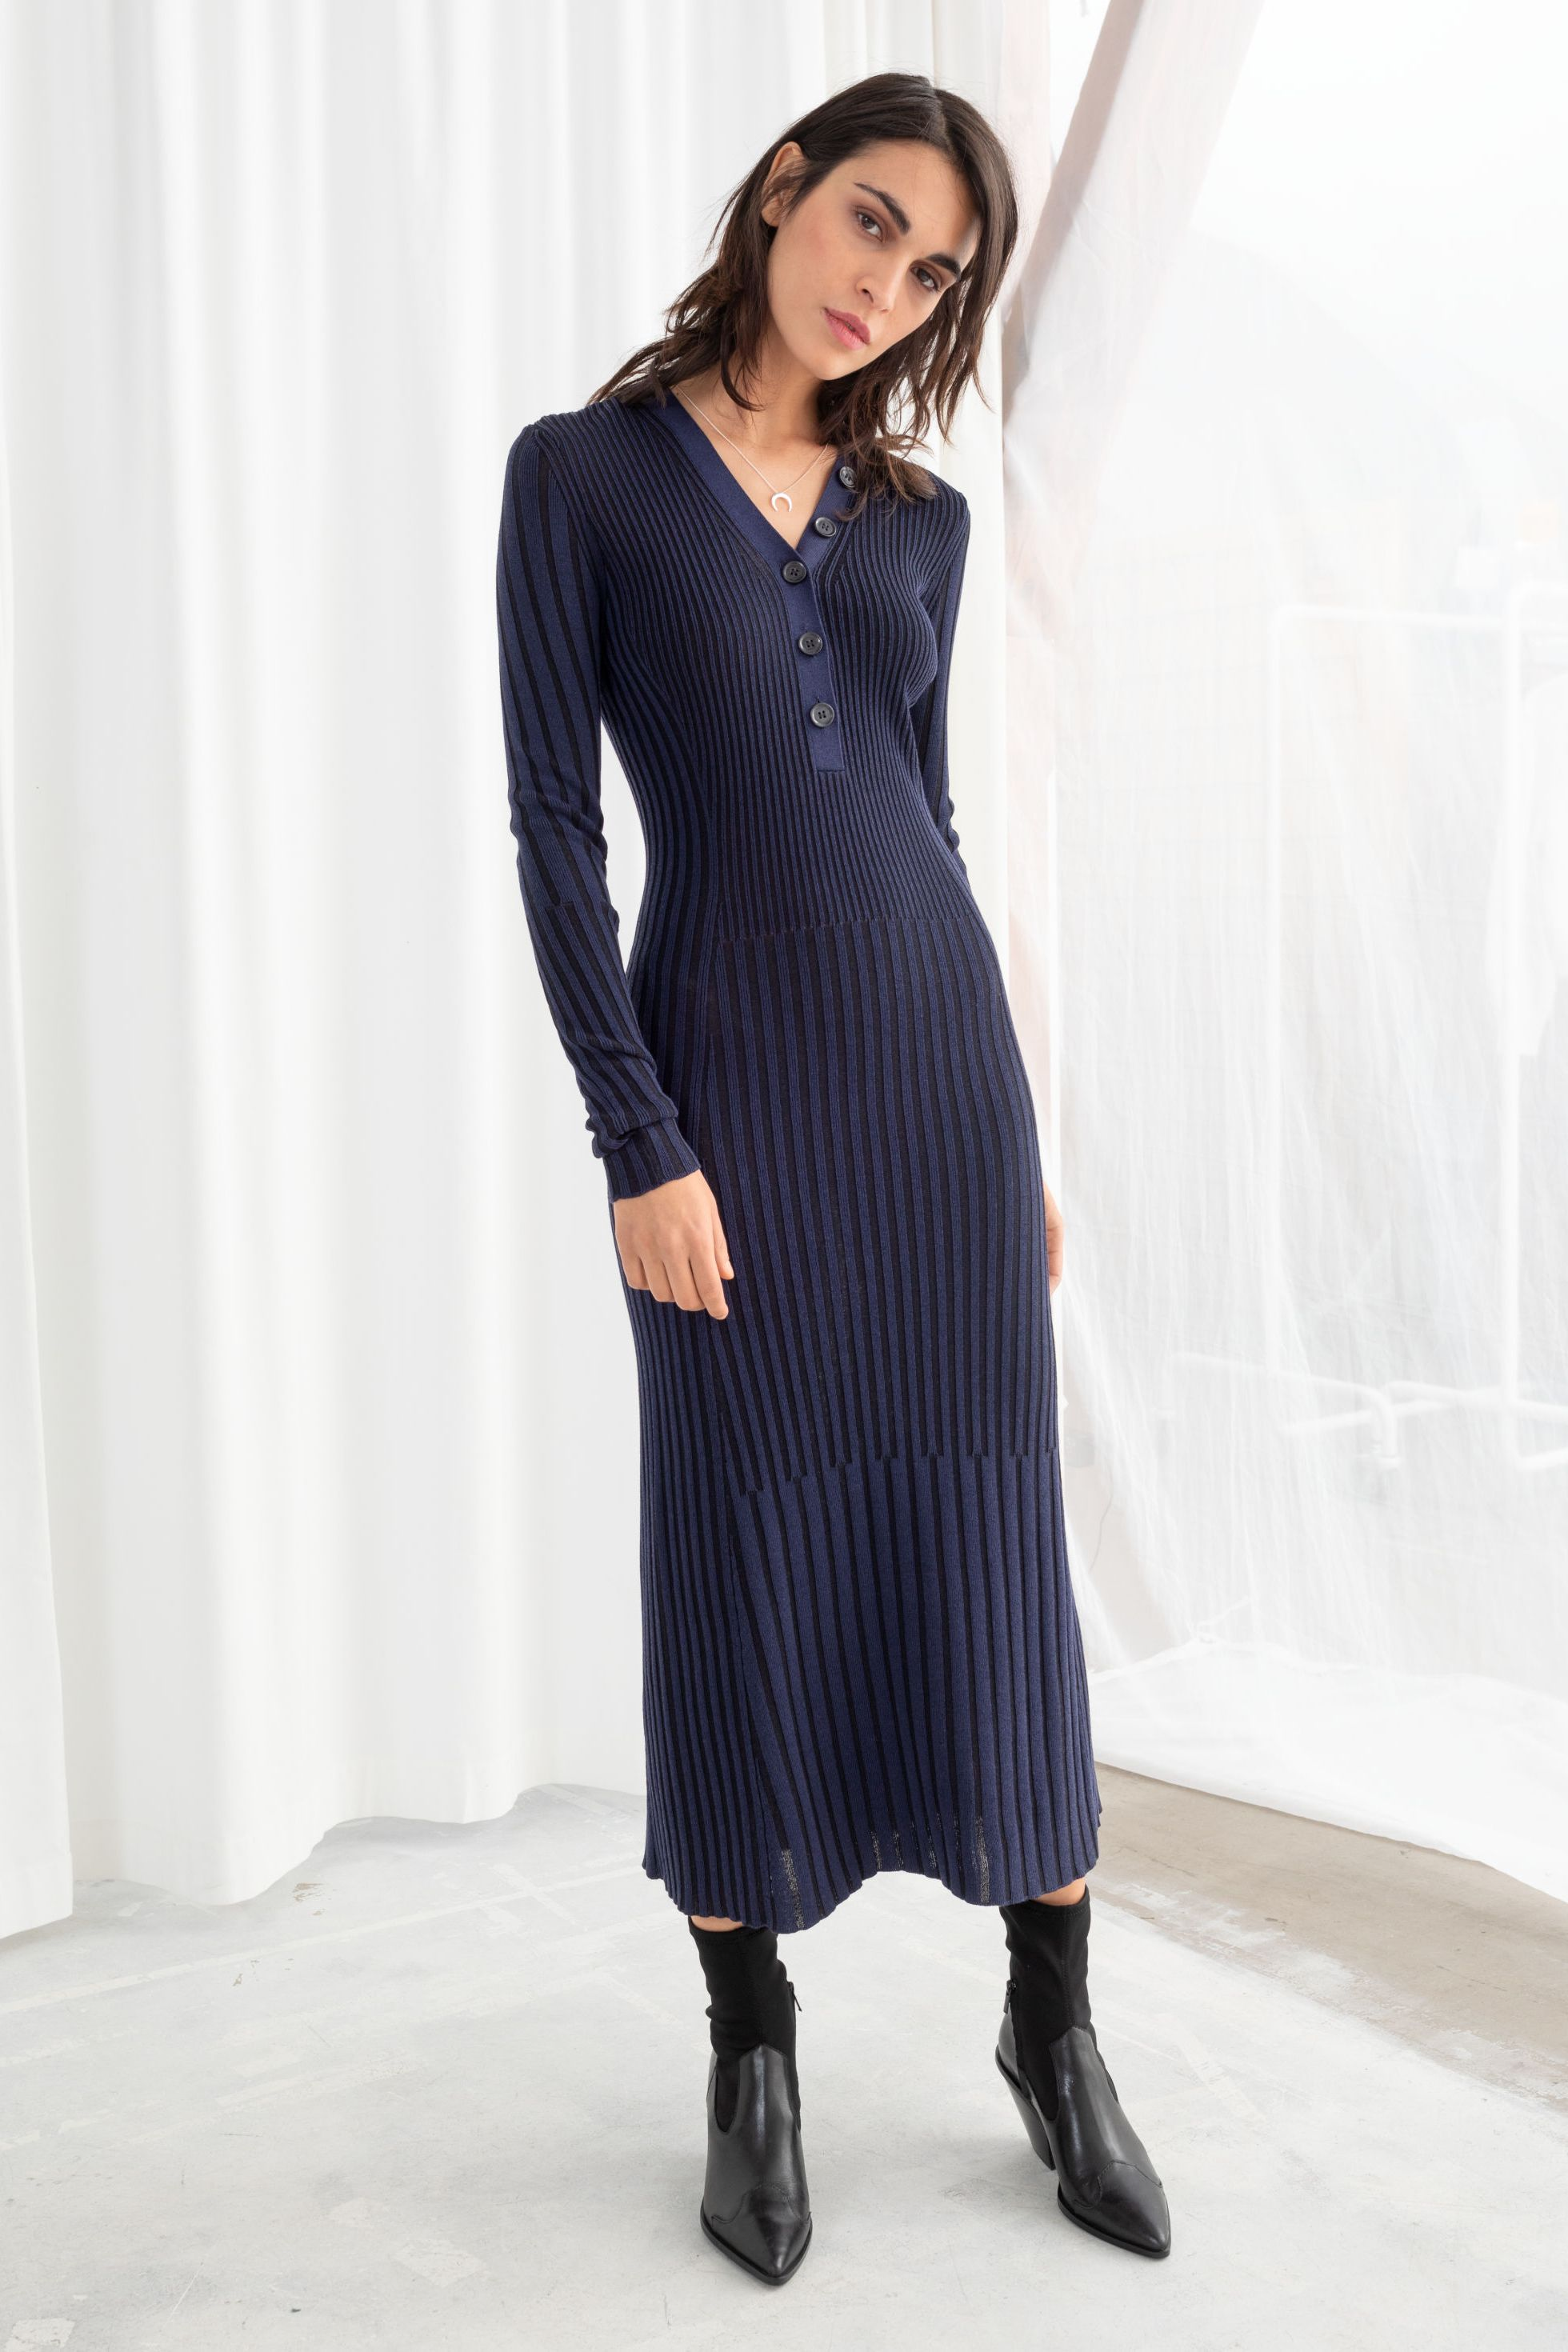 & other stories rib knit midi dress